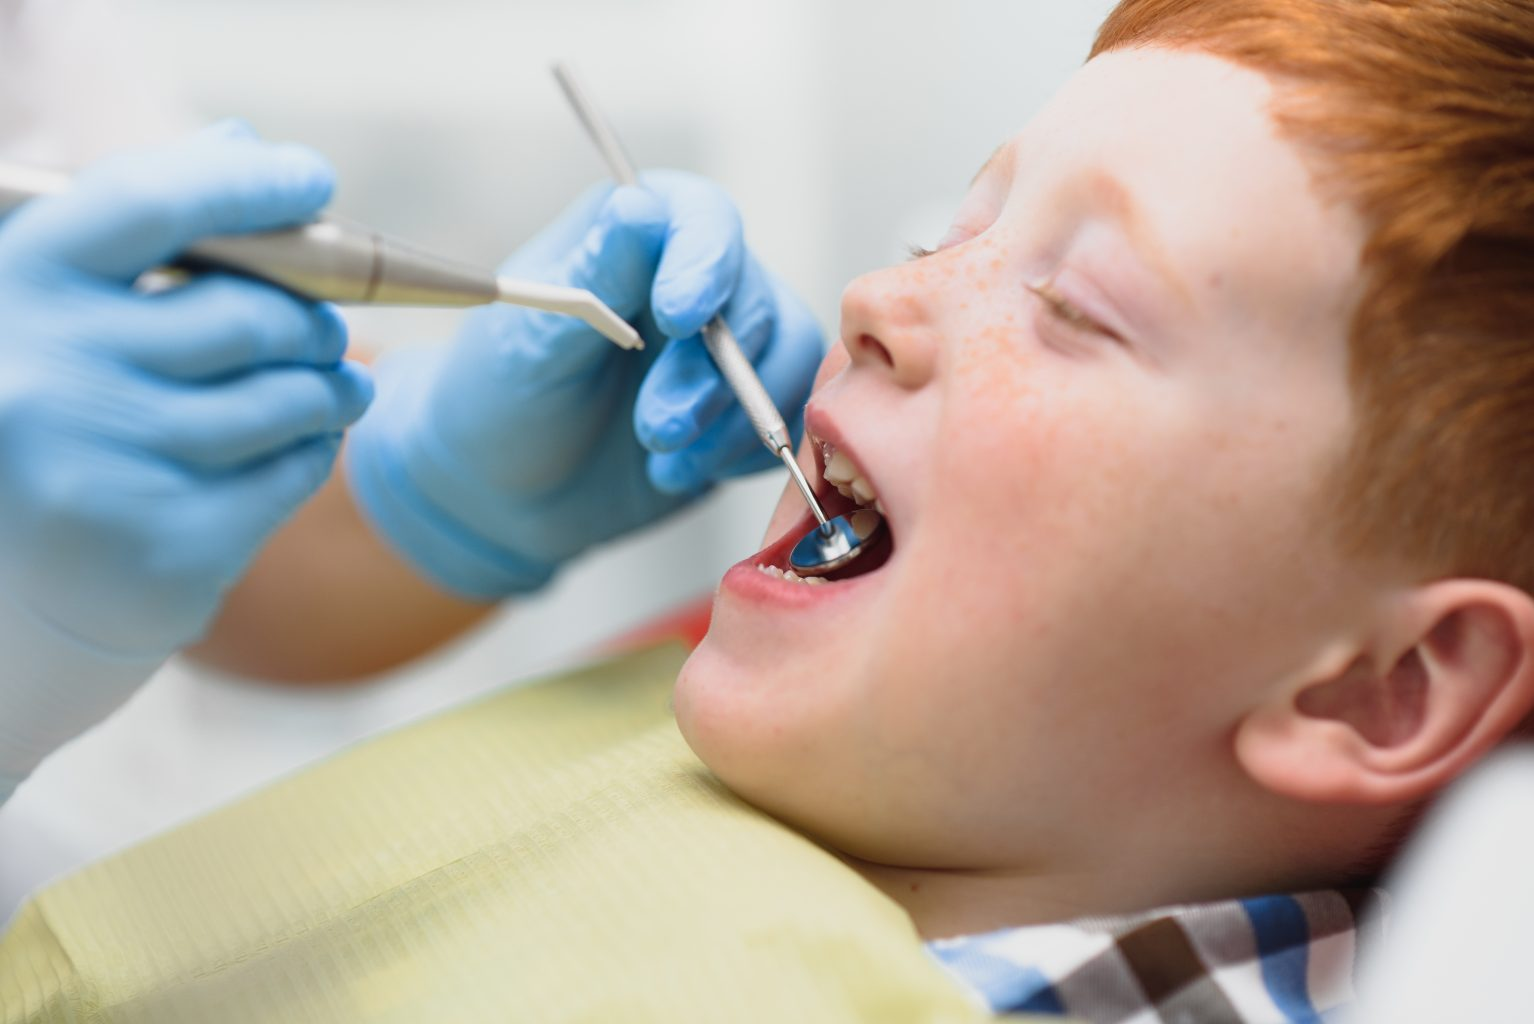 Boy Satisfied With The Service In The Dental Office. Concept Of Pediatric Dental Treatment